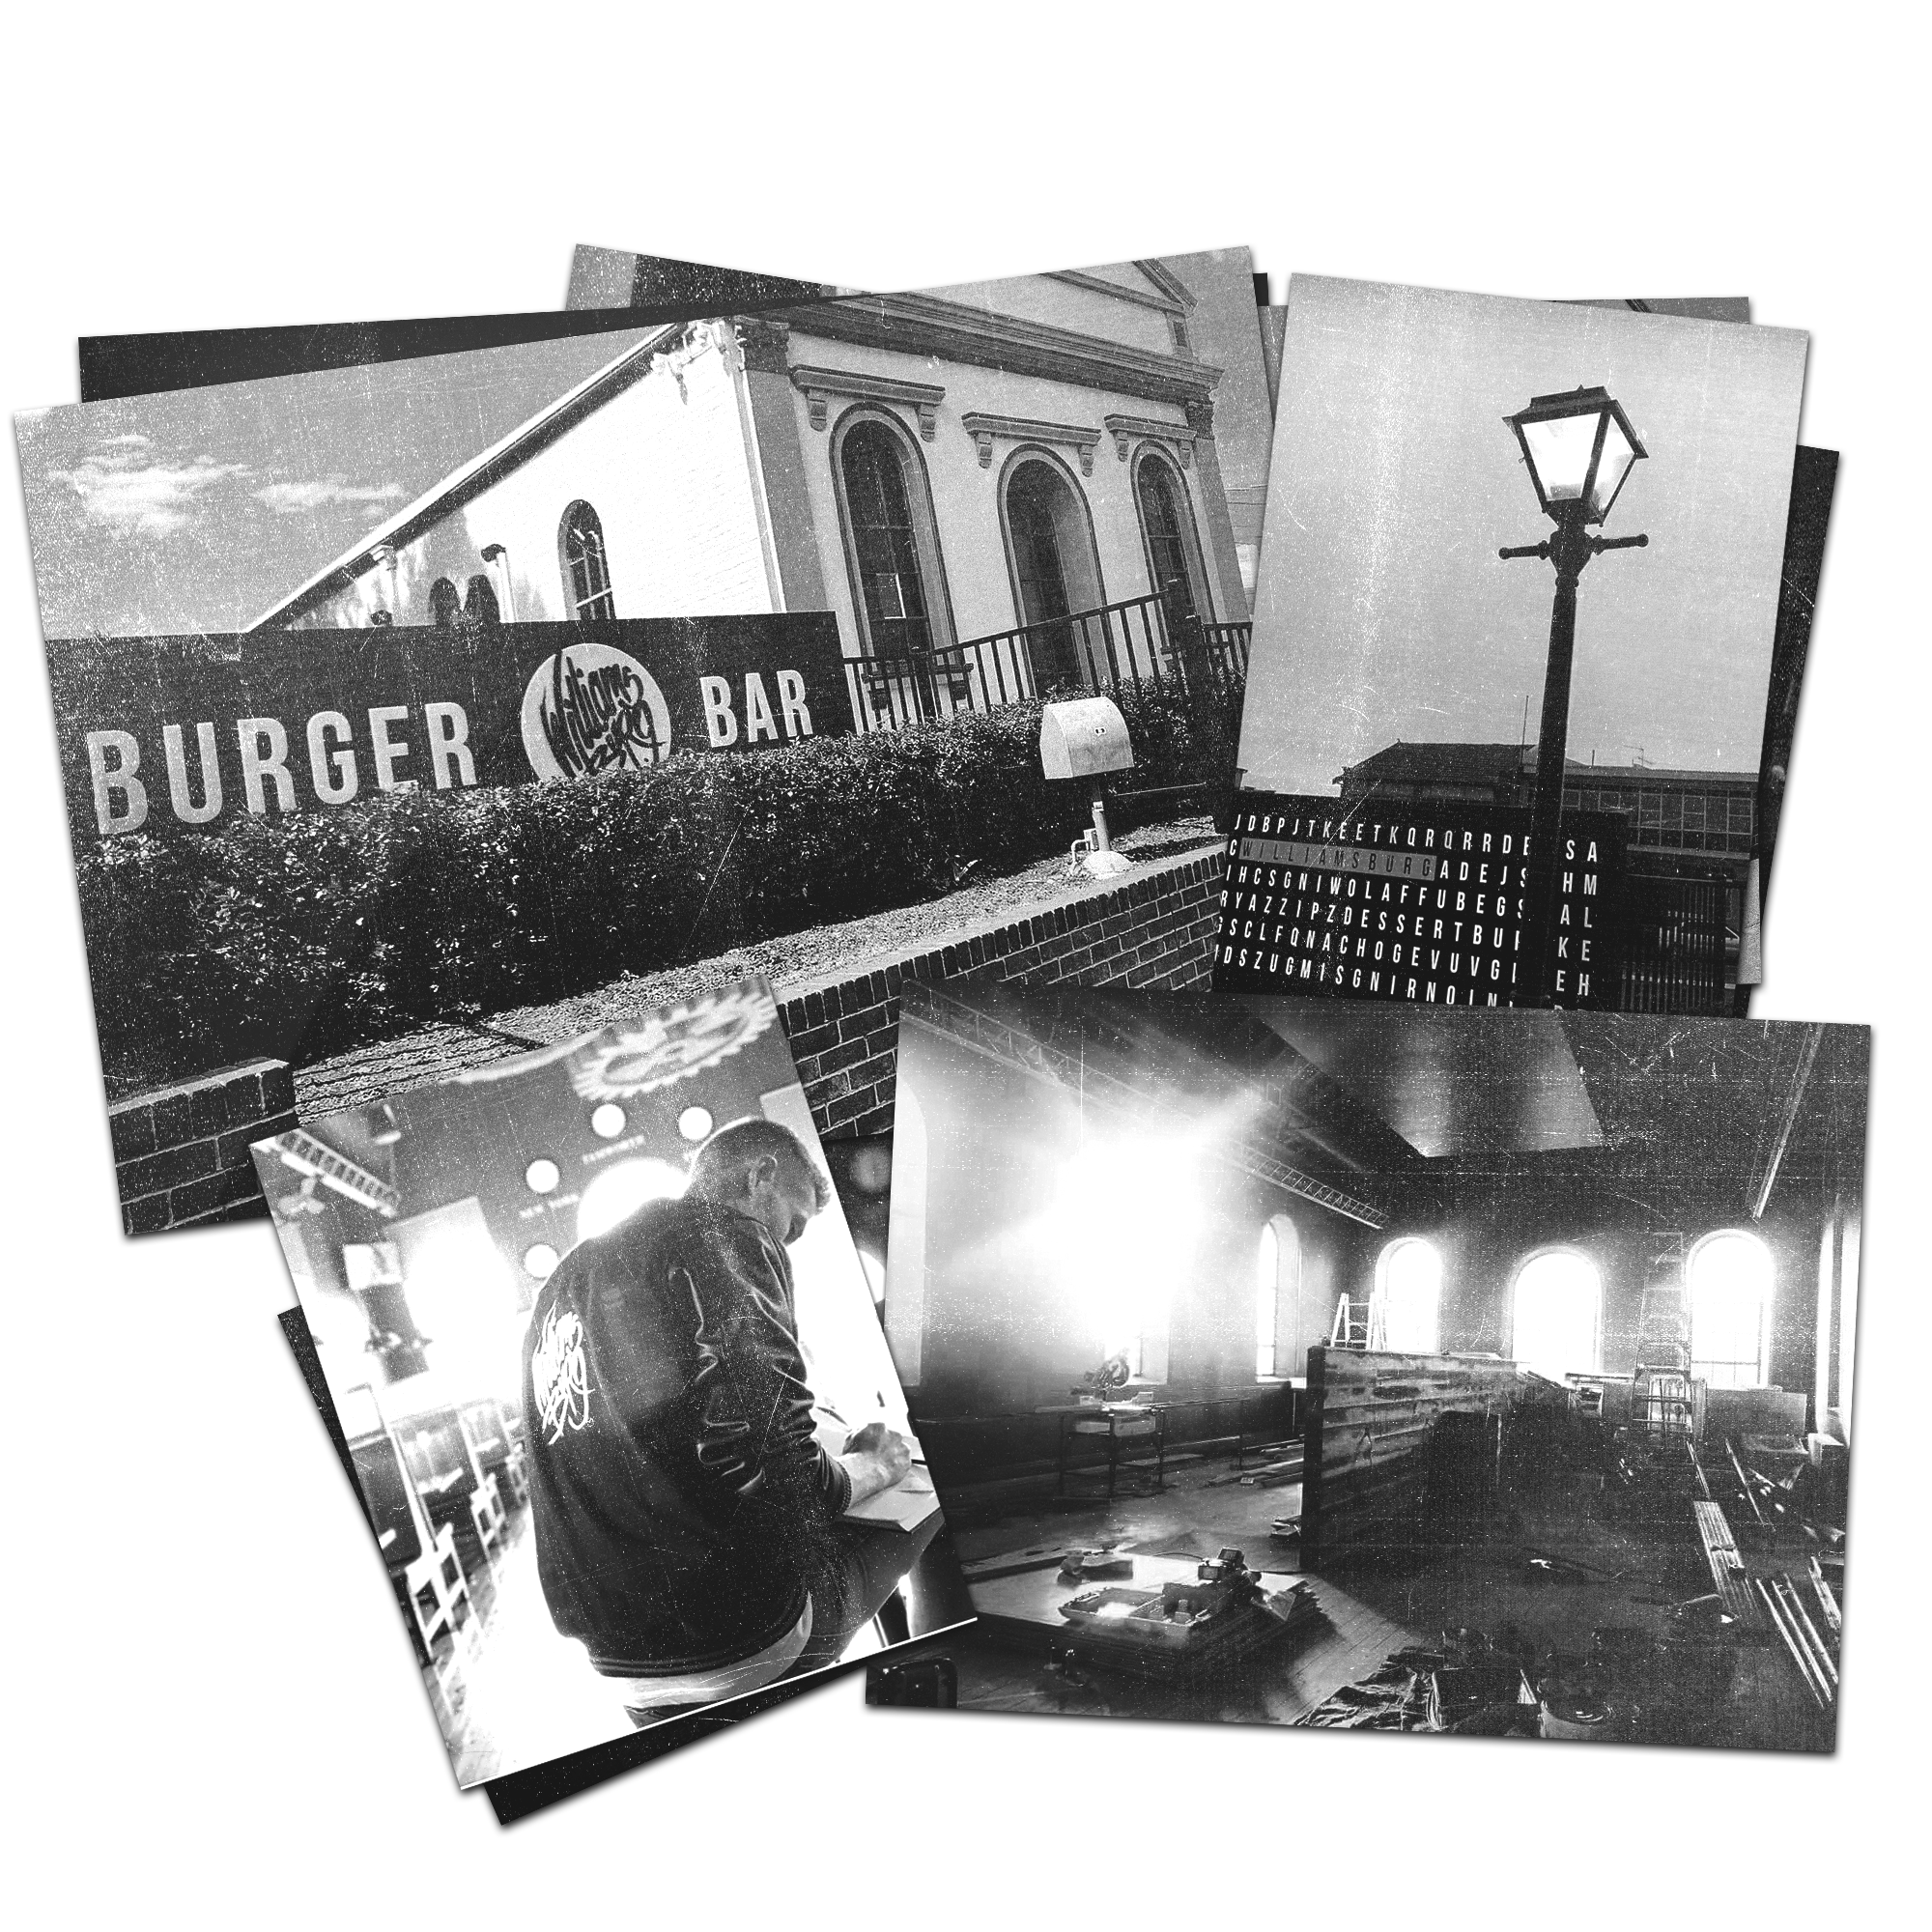 Four black and white photos of Williamsburg. First on outside Williamsburg showing an older building and a sign that reads burger bar. Second an old lamp post outside of Williamsburg. Third a photo of Williamsburg's owner Luke working. Fourth a photo of Williamsburg while under construction, tools, materials everywhere.